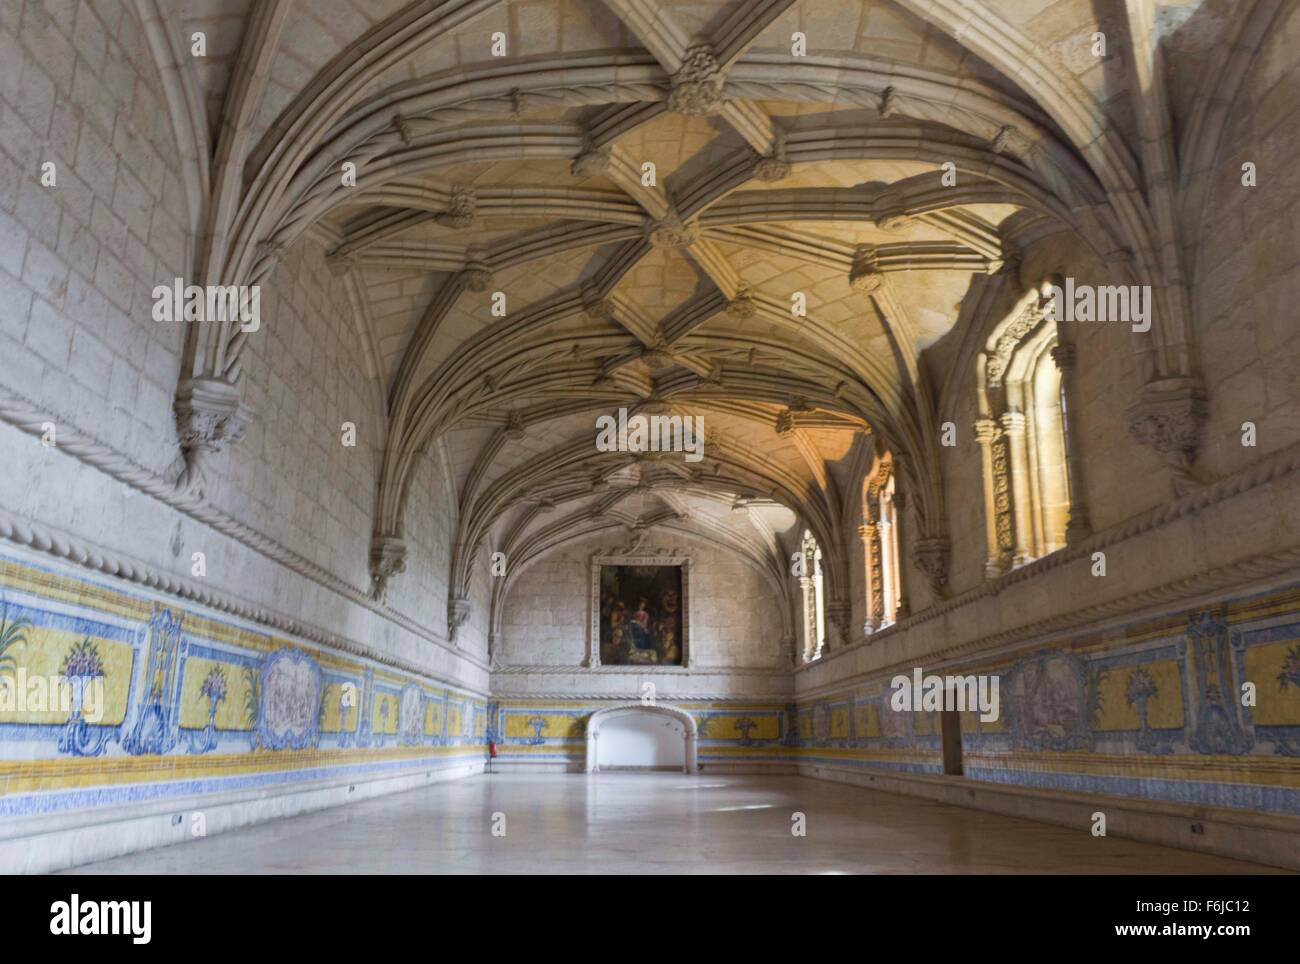 LISBON, PORTUGAL - OCTOBEr 24 2014: Room interiors of Jeronimos monastery in Lisbon, with vaulted ceiling and azulejos - Stock Image